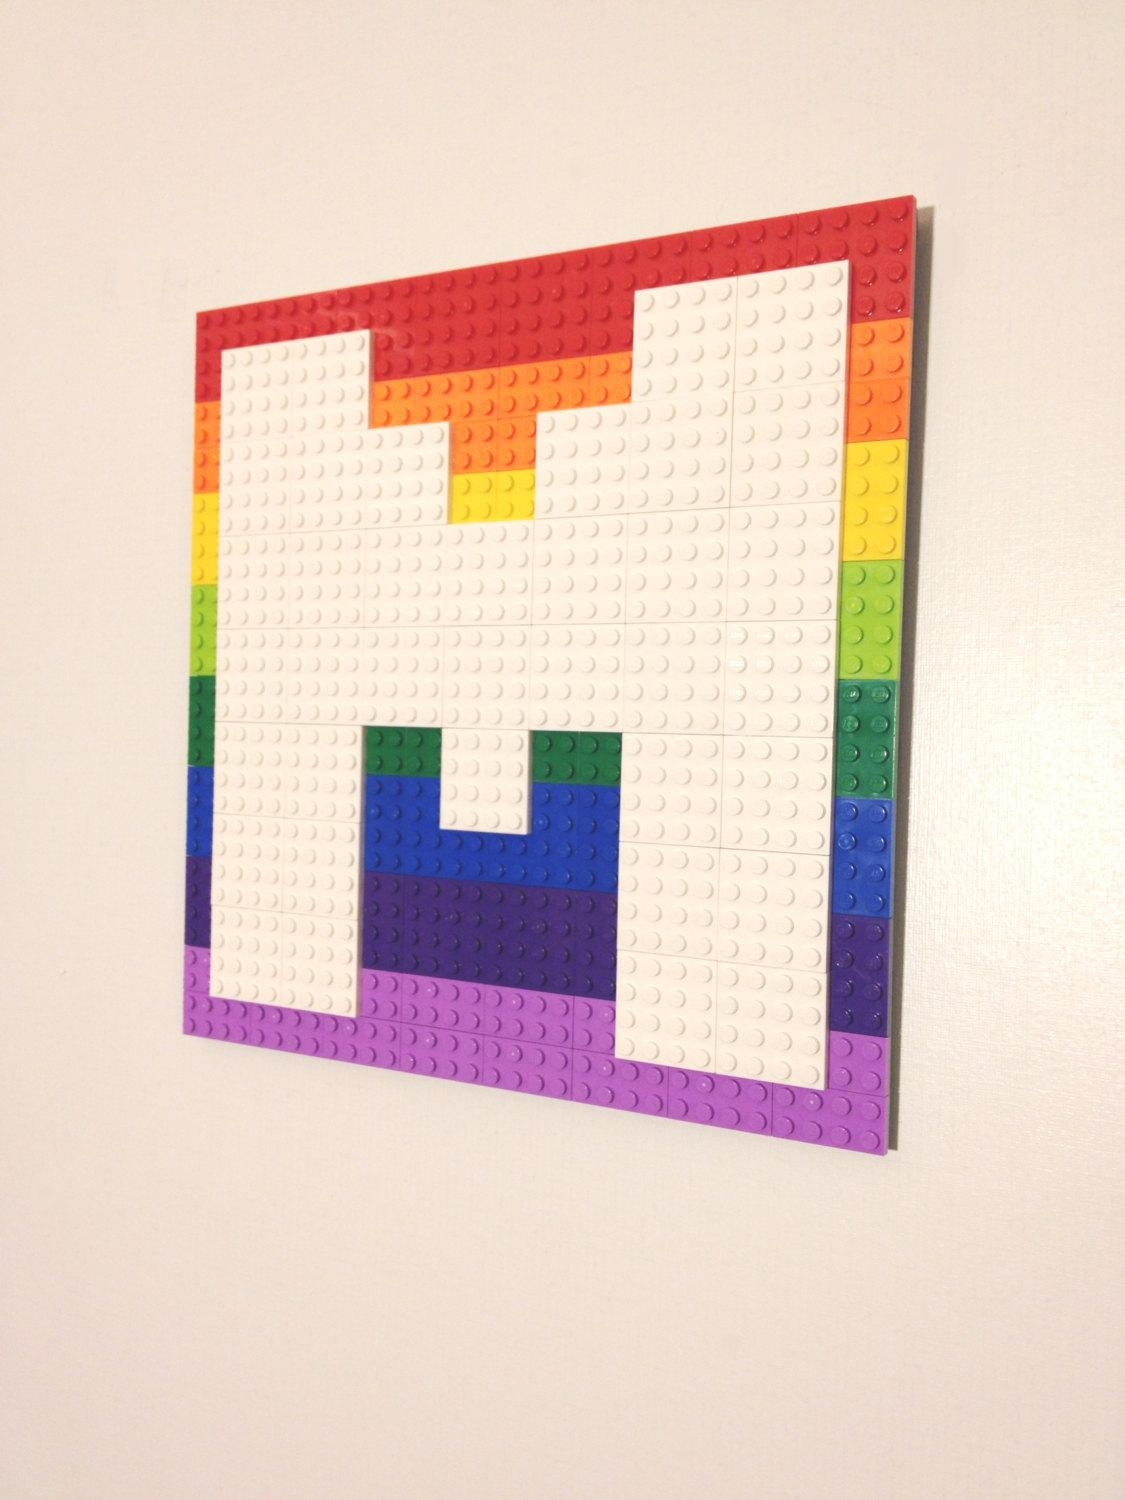 Pixel Letter Lego® Wall Art W/ Background Arcade Font Hanging Within Pixel Mosaic Wall Art (Image 10 of 20)